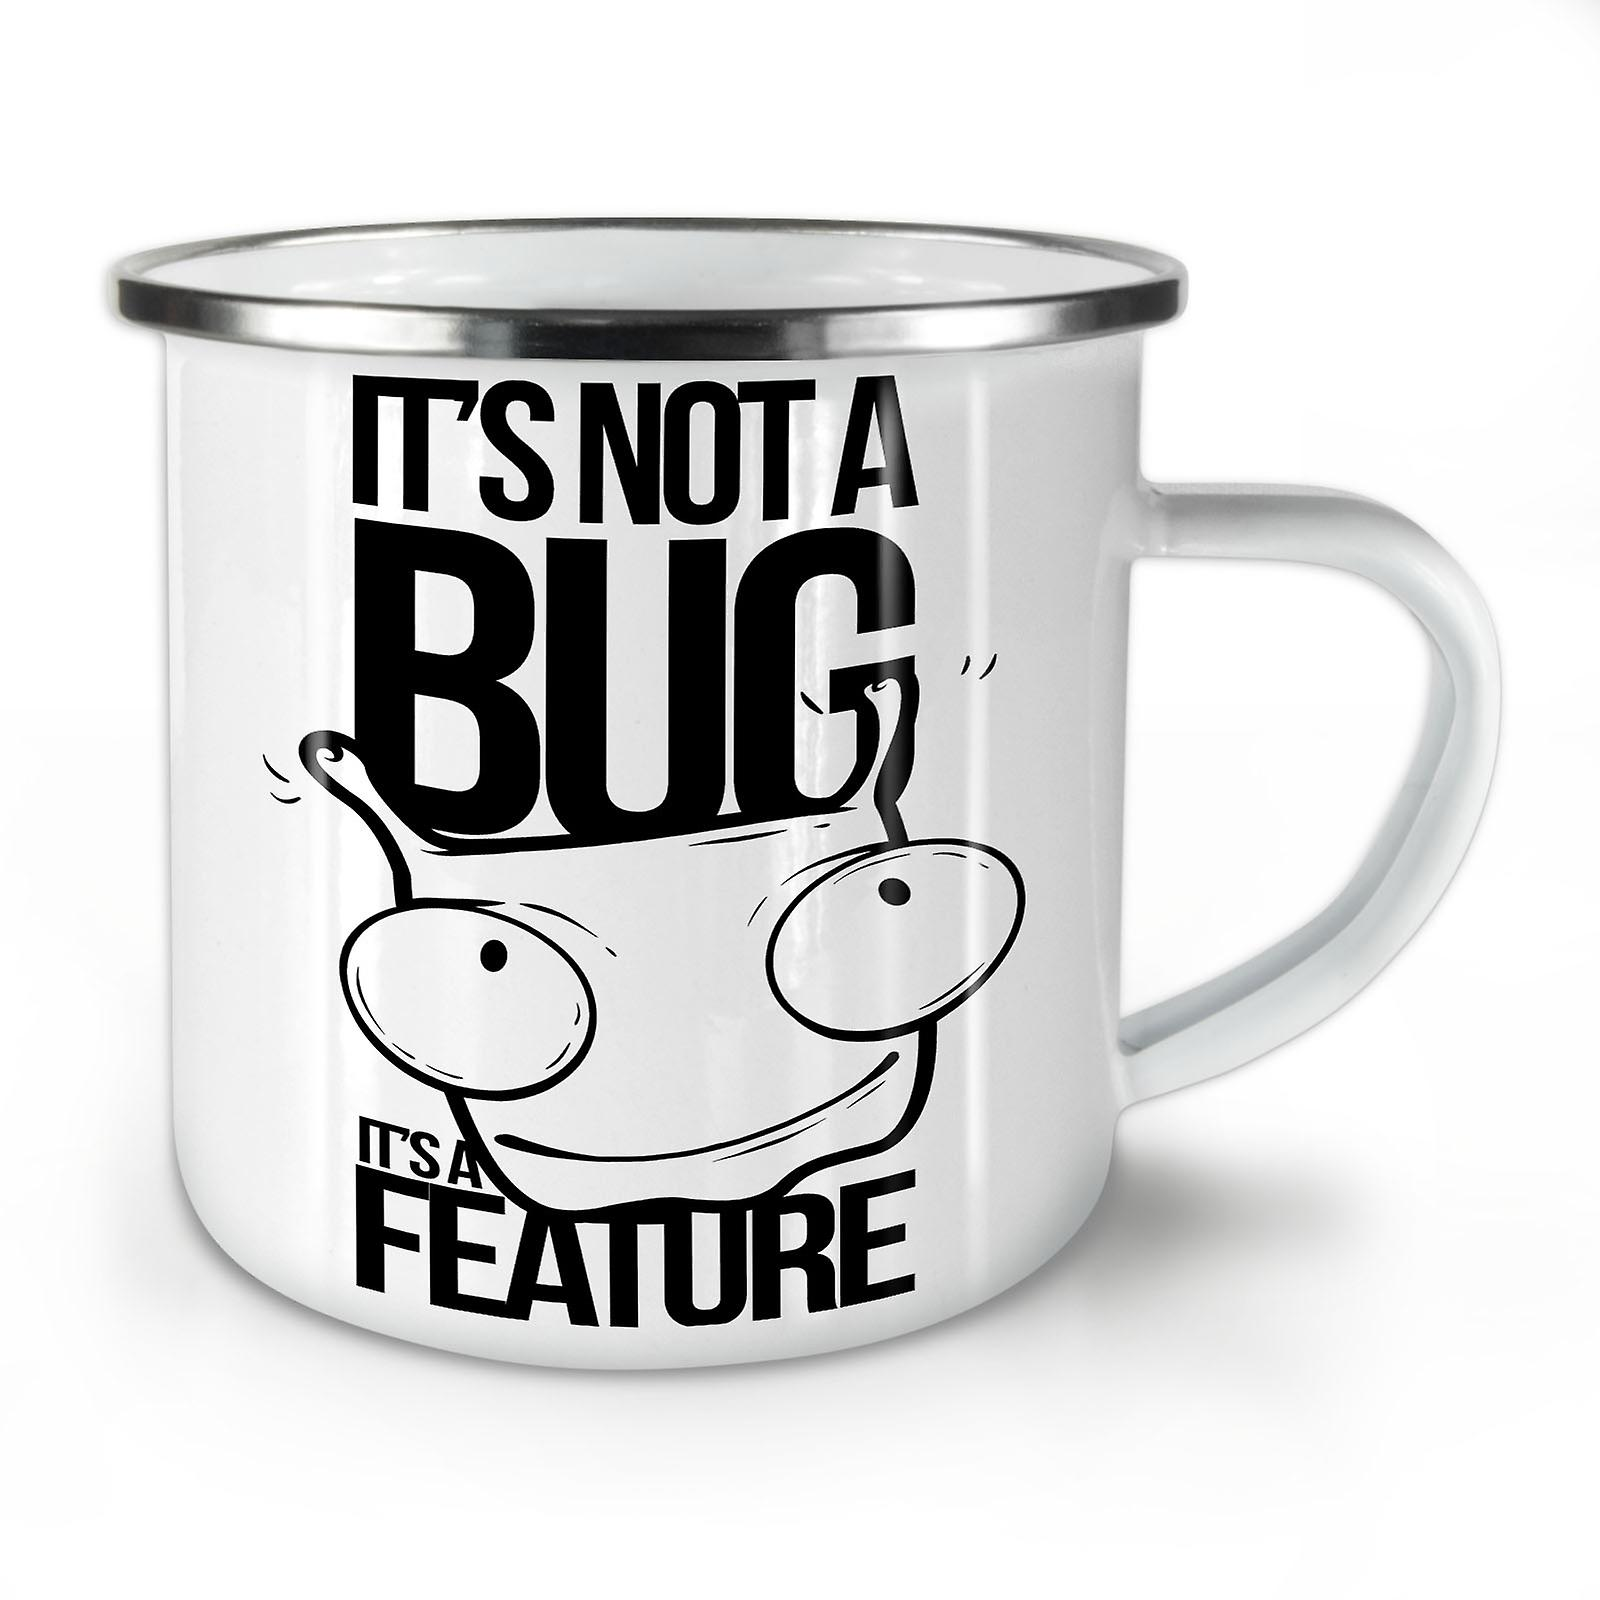 Enamel Mug10 Coffee Whitetea Geek OzWellcoda A Bug Not New htQrxsCdB